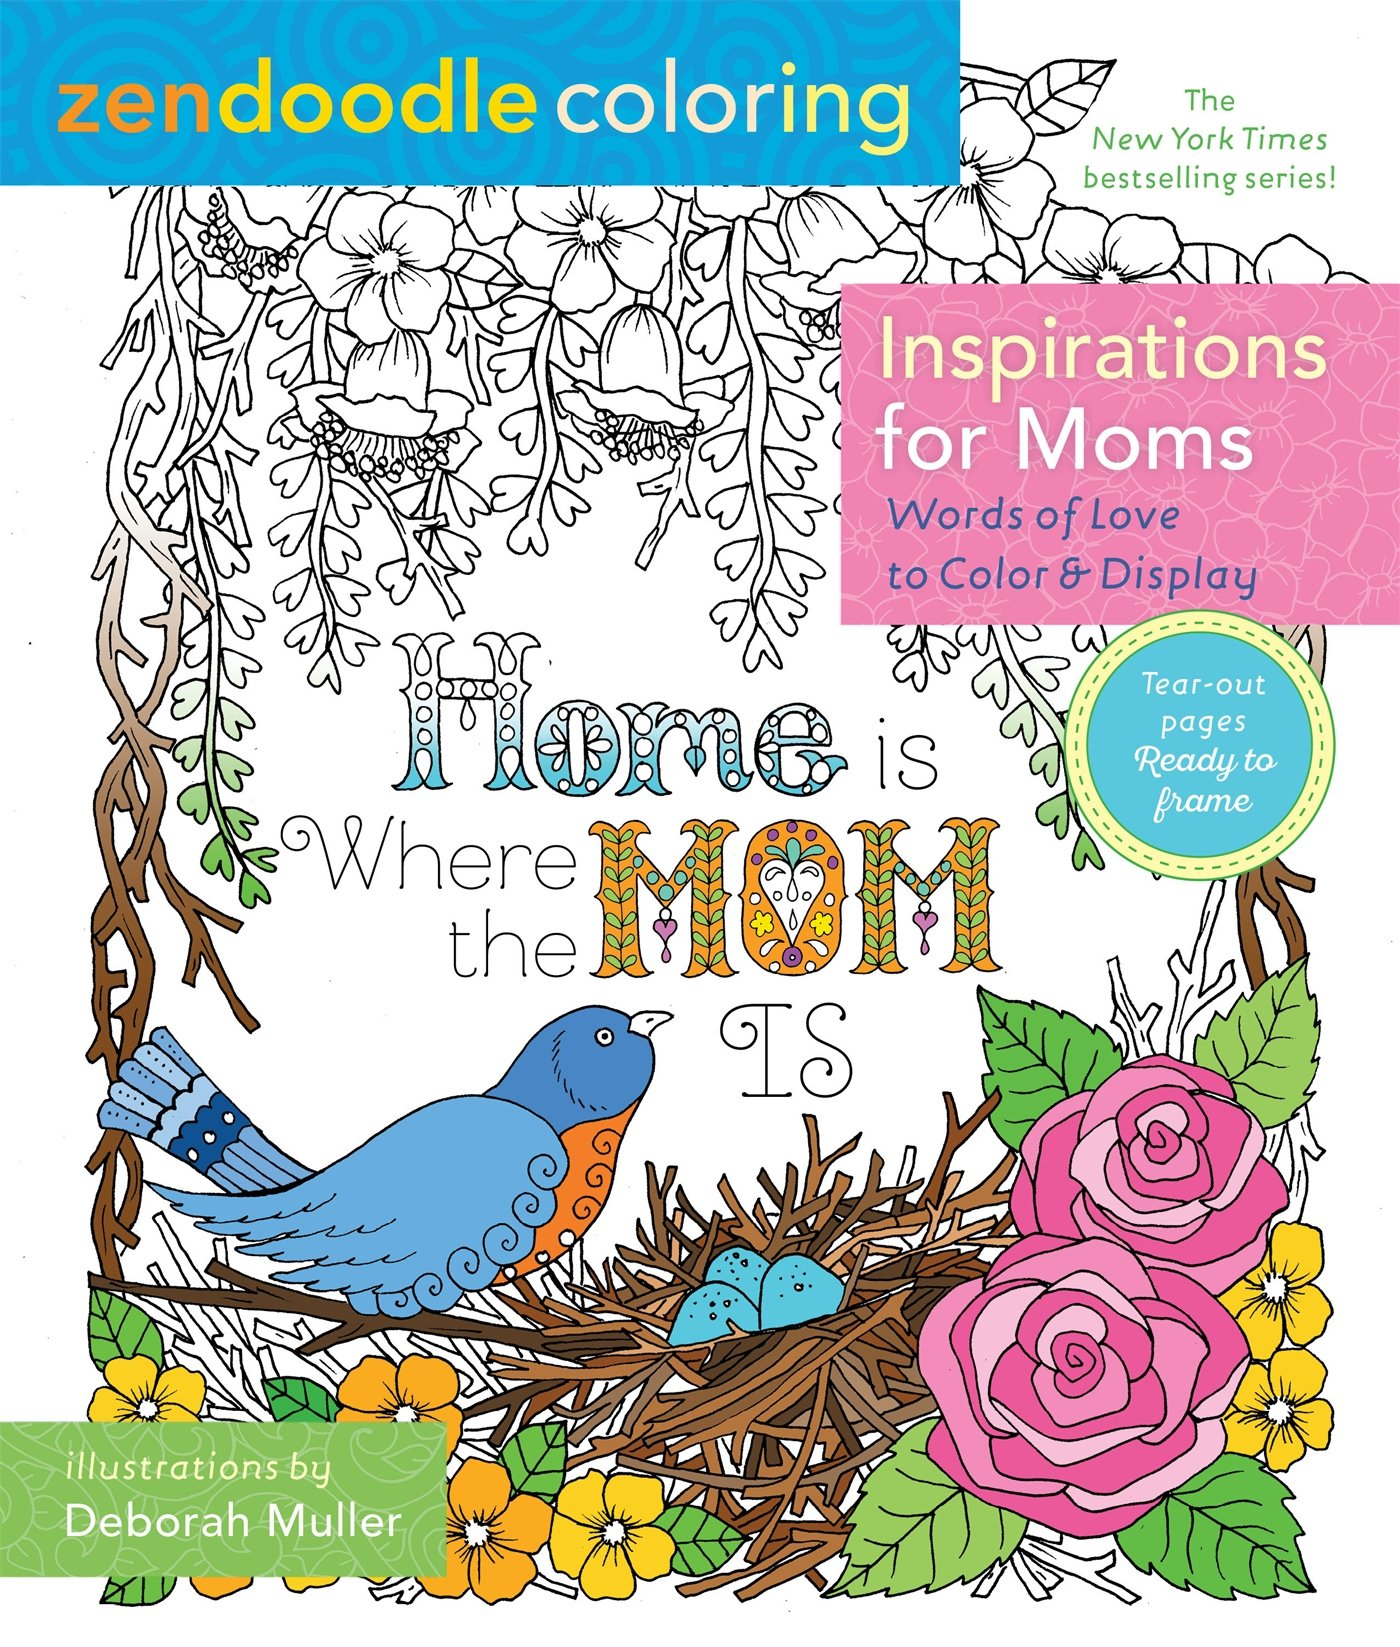 Zendoodle Coloring Inspirations Words Display product image